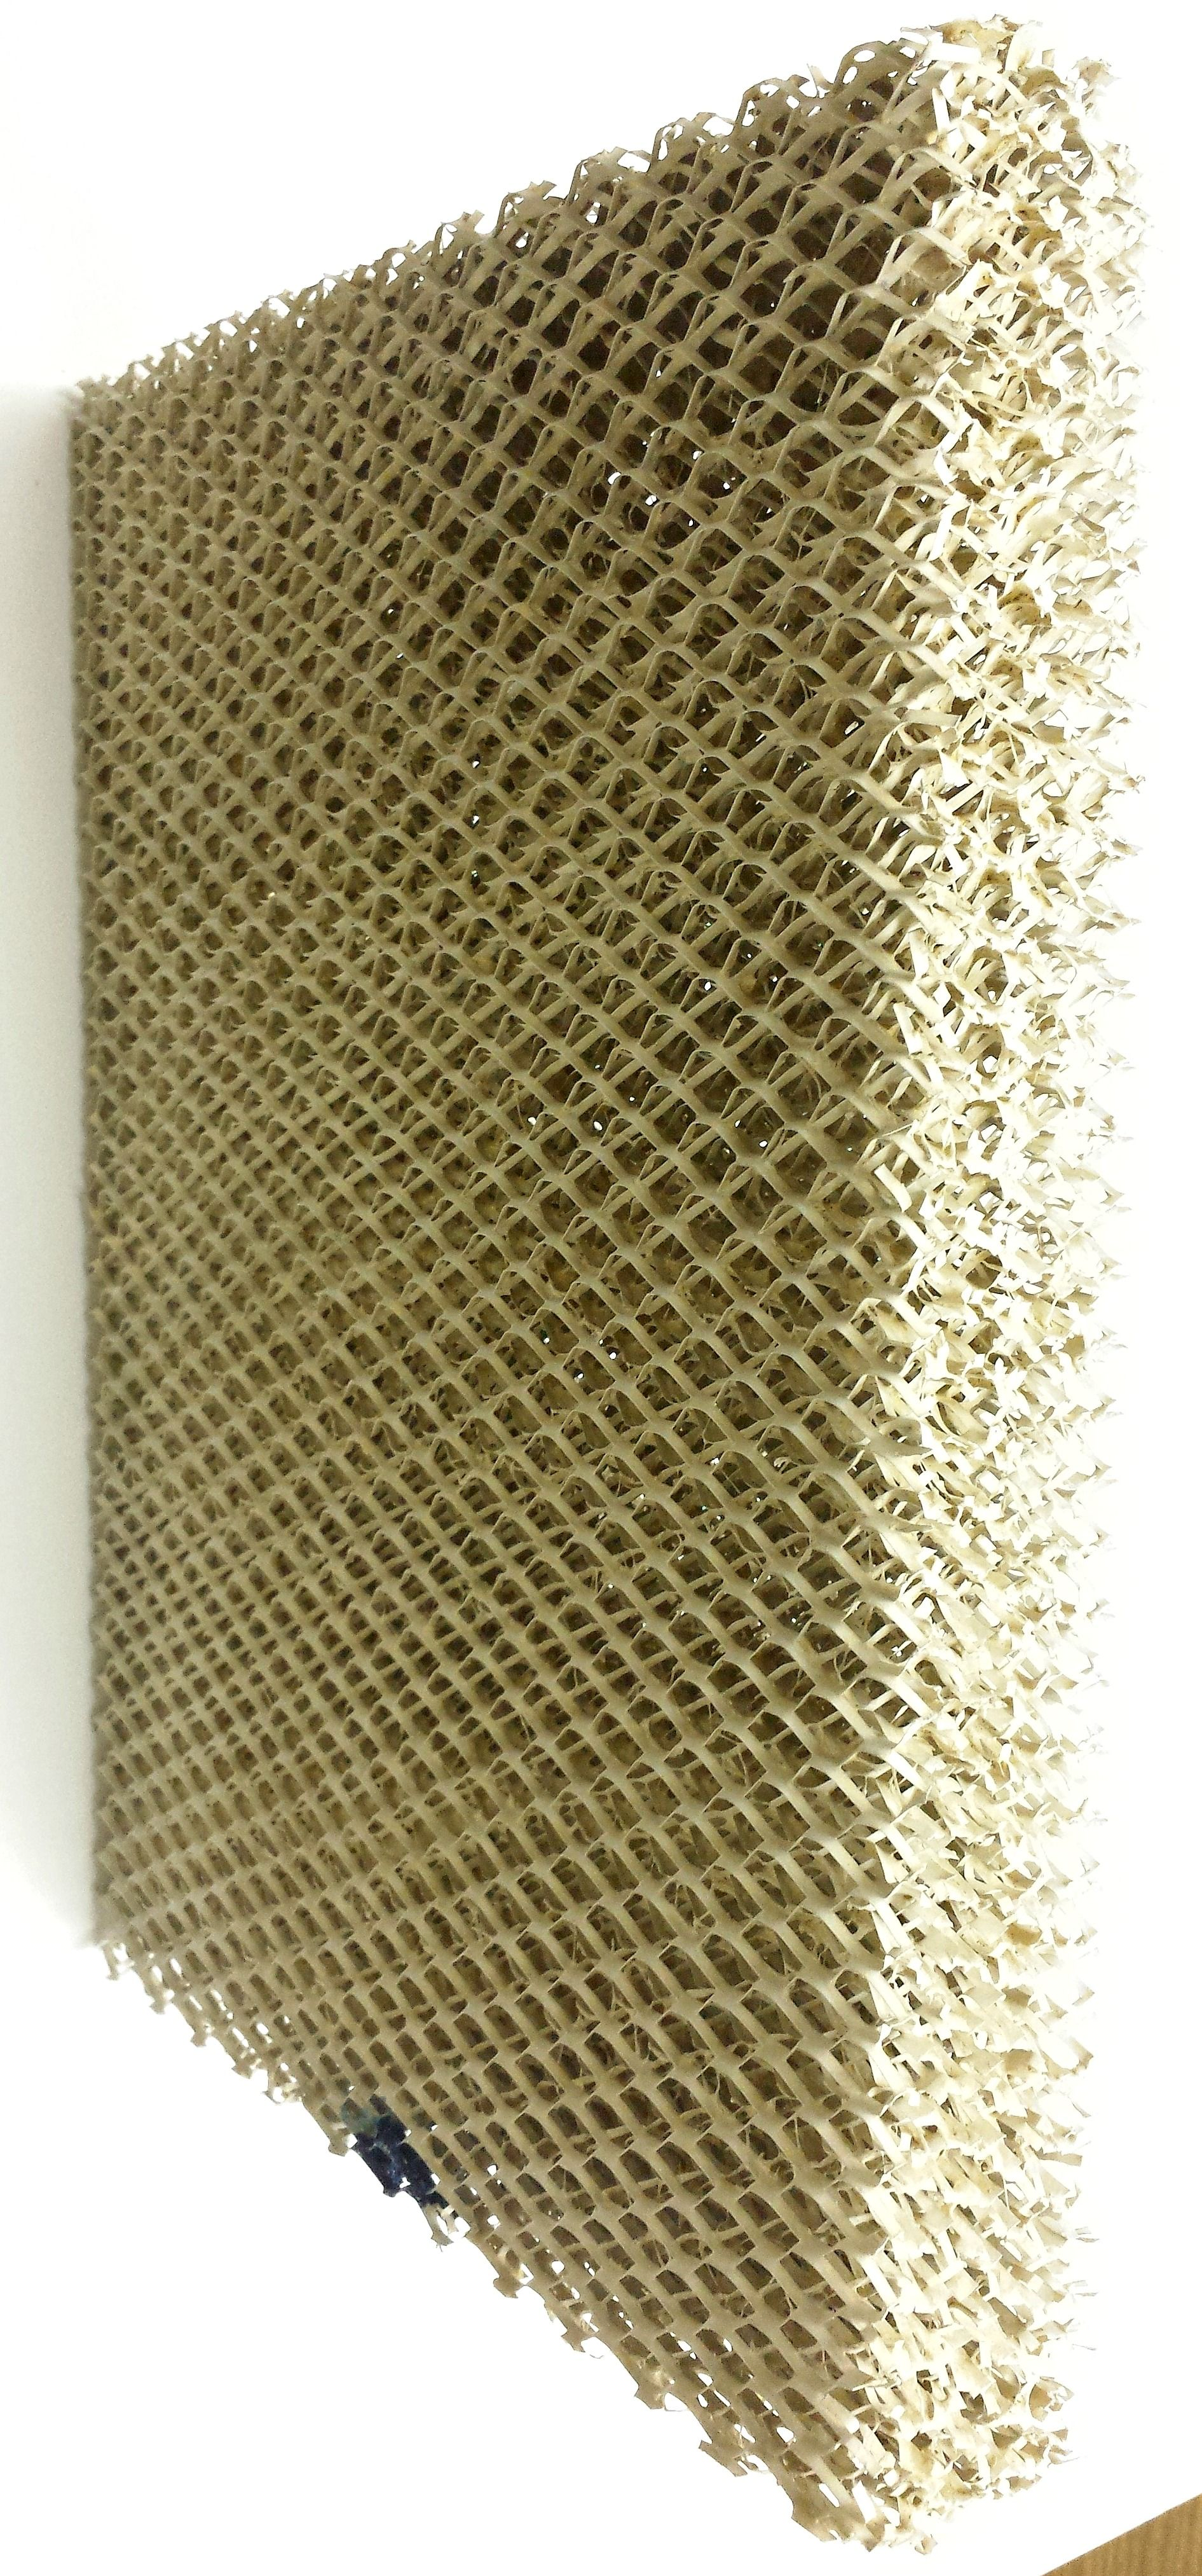 Honeywell Humidifier Pad. Honeywell, Humidifier, Pad